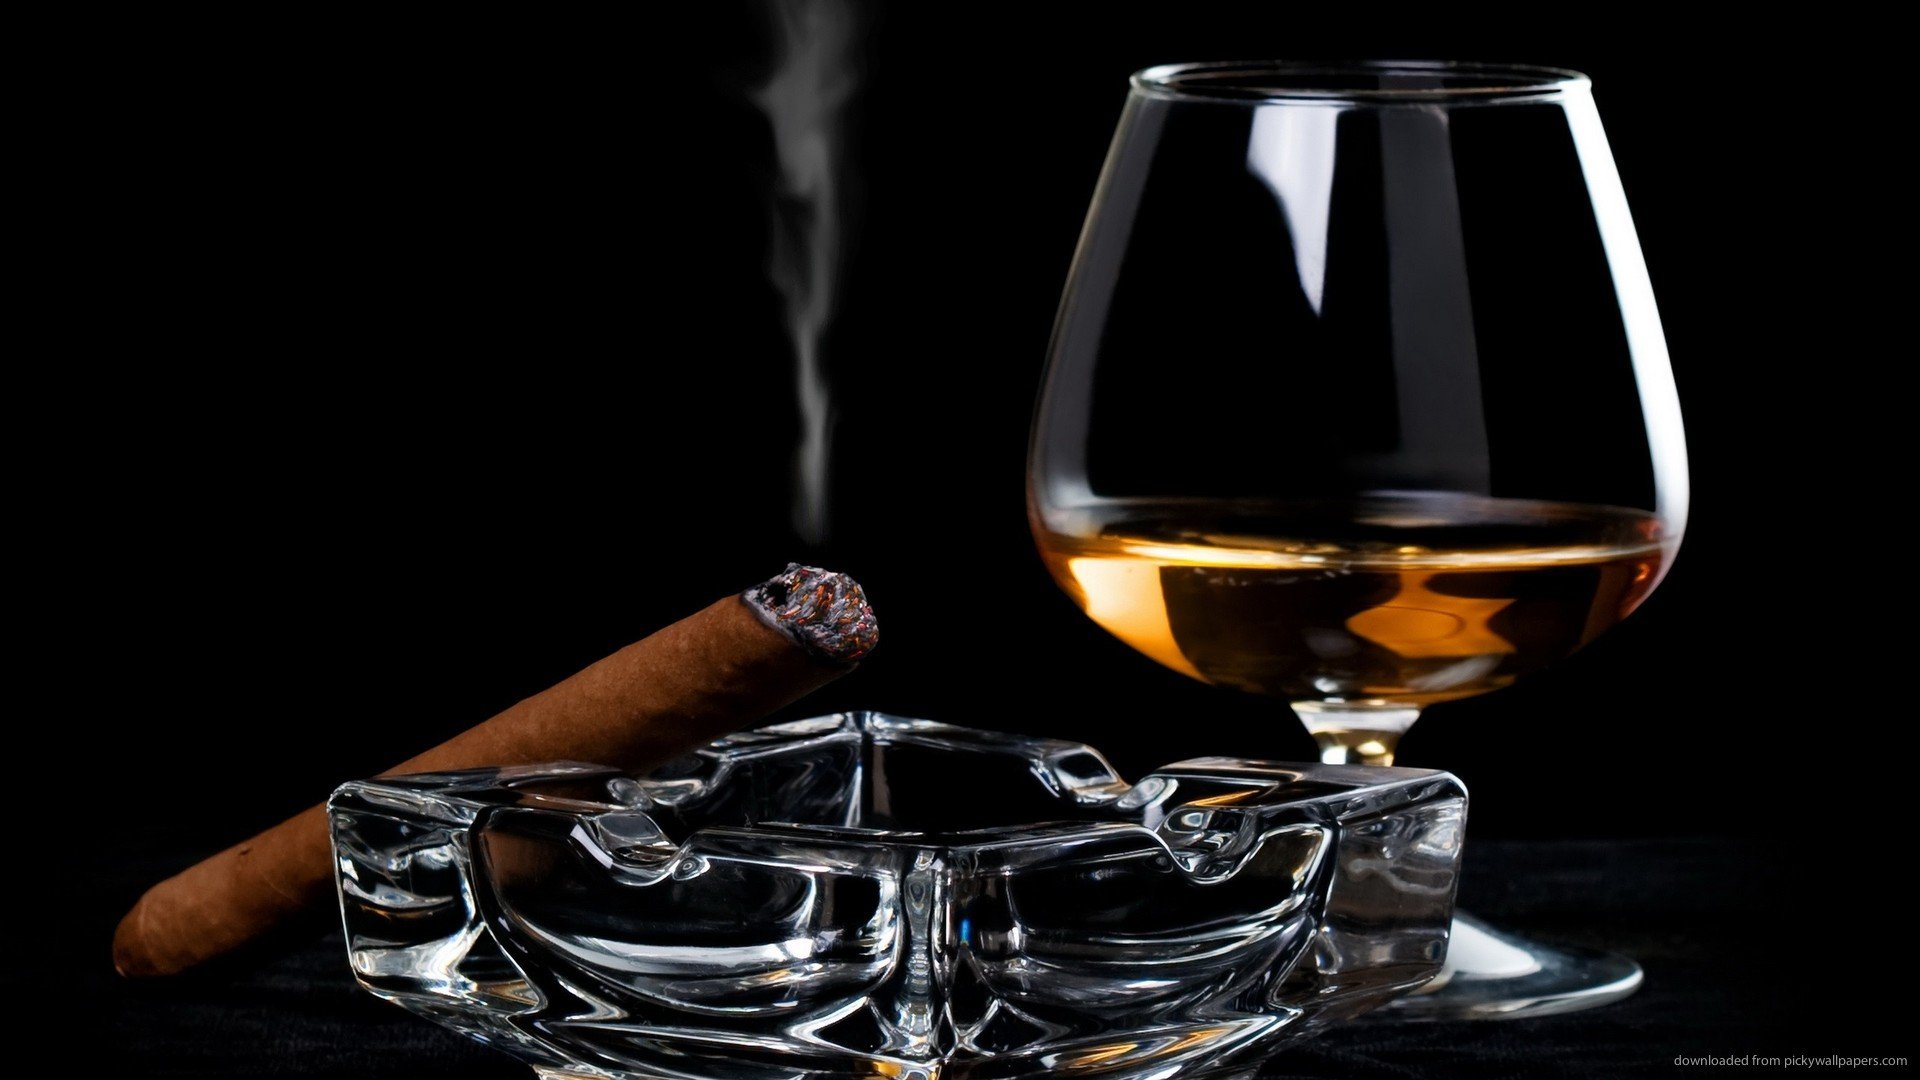 Cigar Picture For iPhone Blackberry iPad Cognac And Lighting Cigar 1920x1080